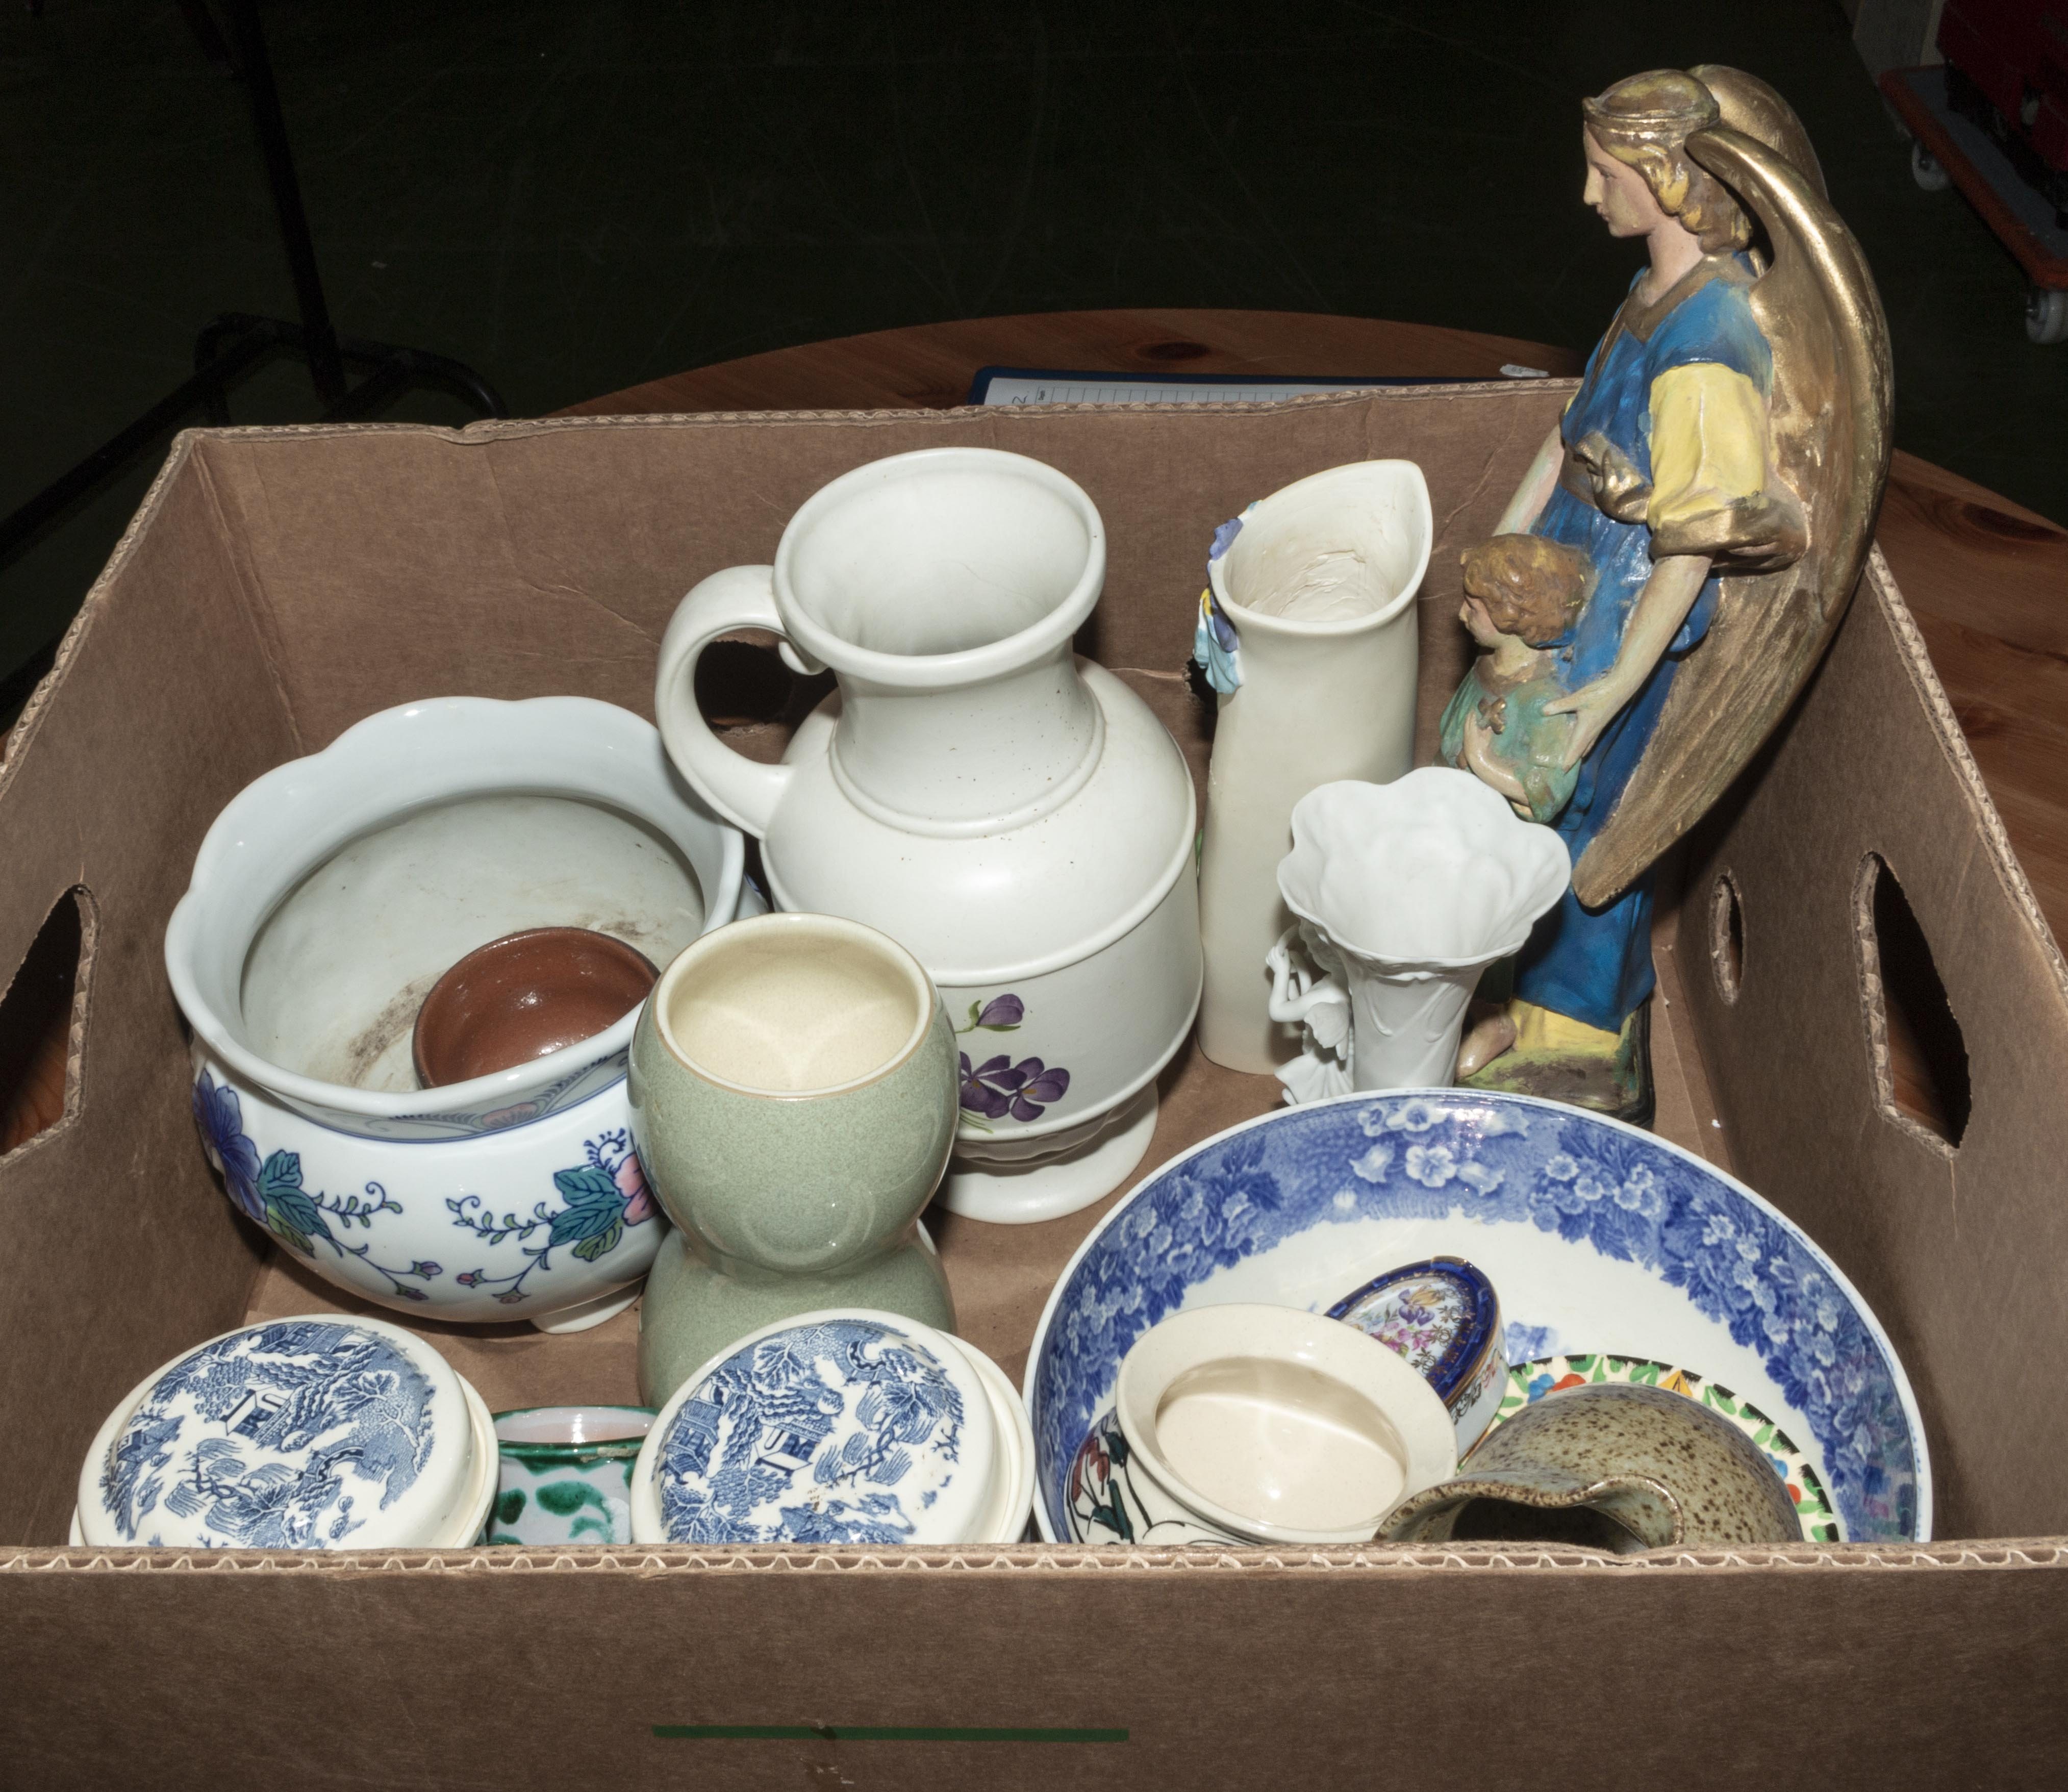 Lot 33 - A box containing pottery items